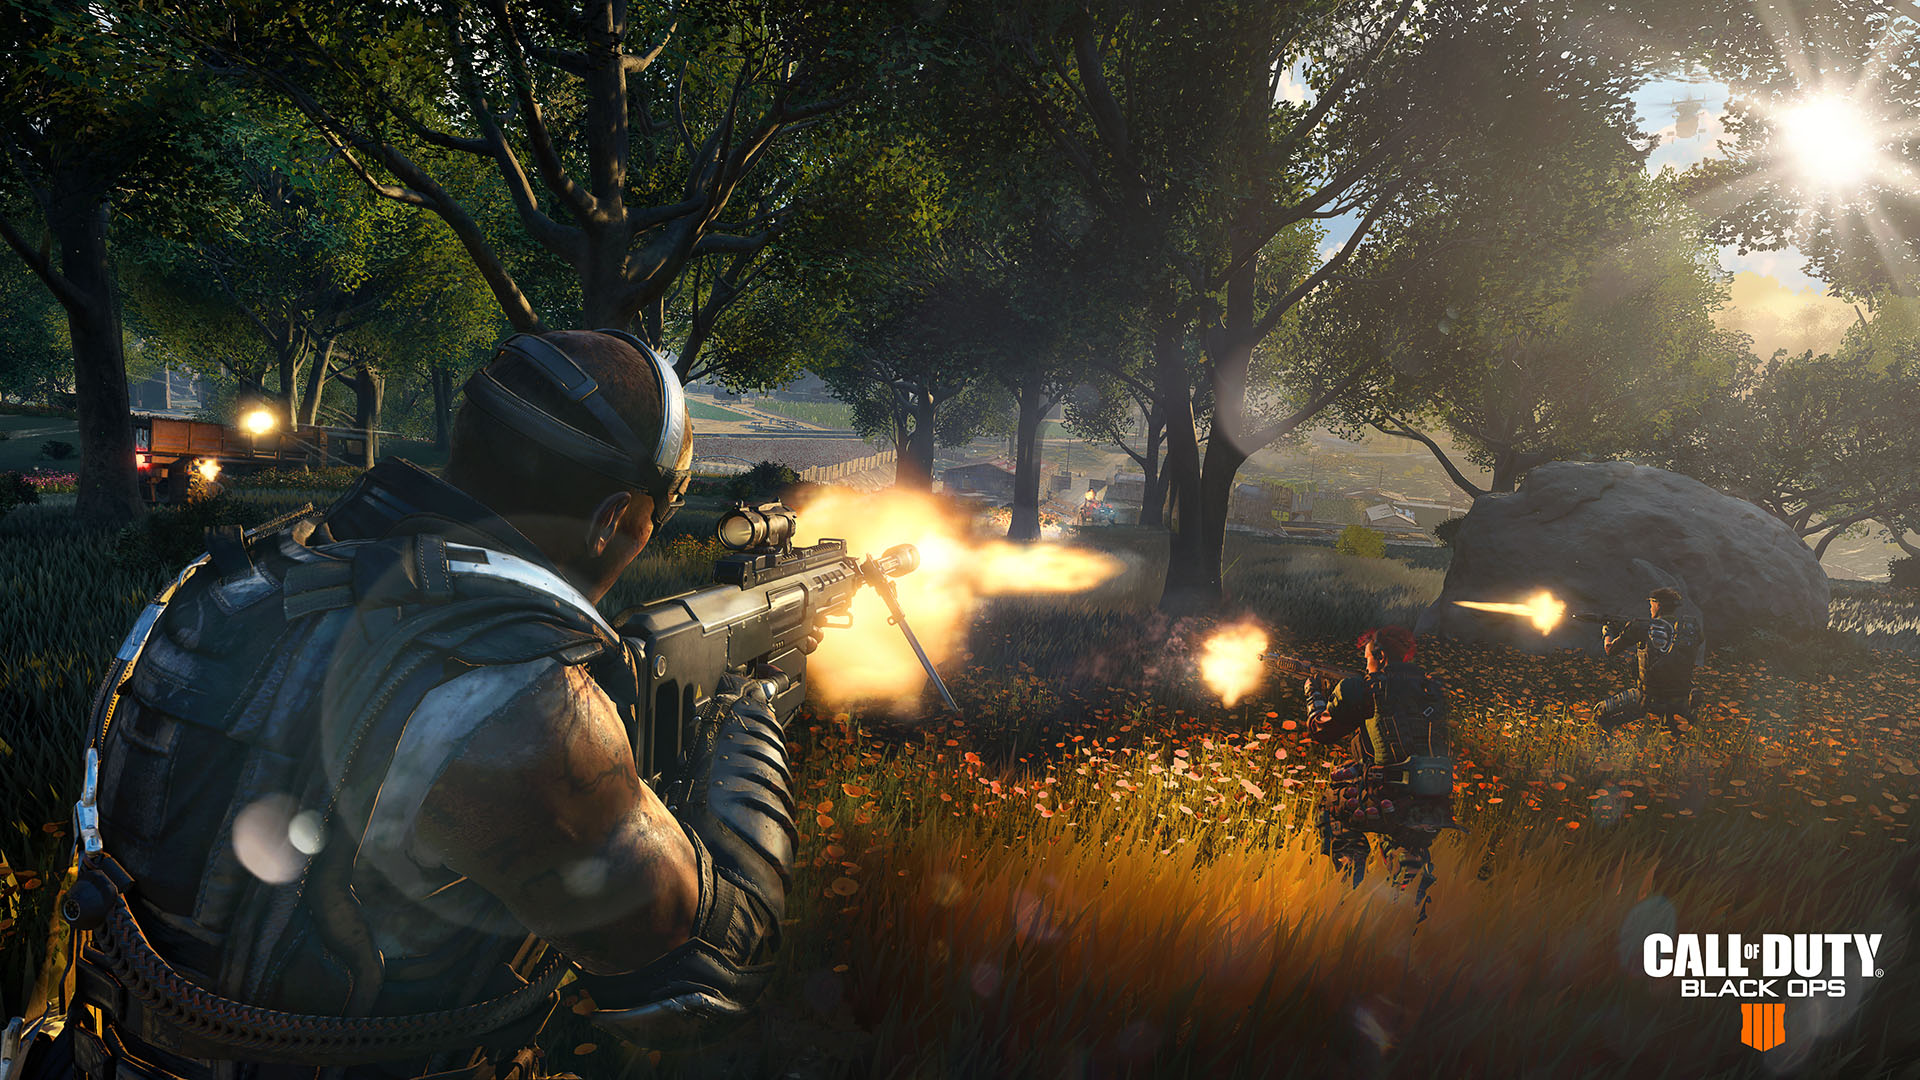 Call of Duty: Black Ops 4 Blackout visuals